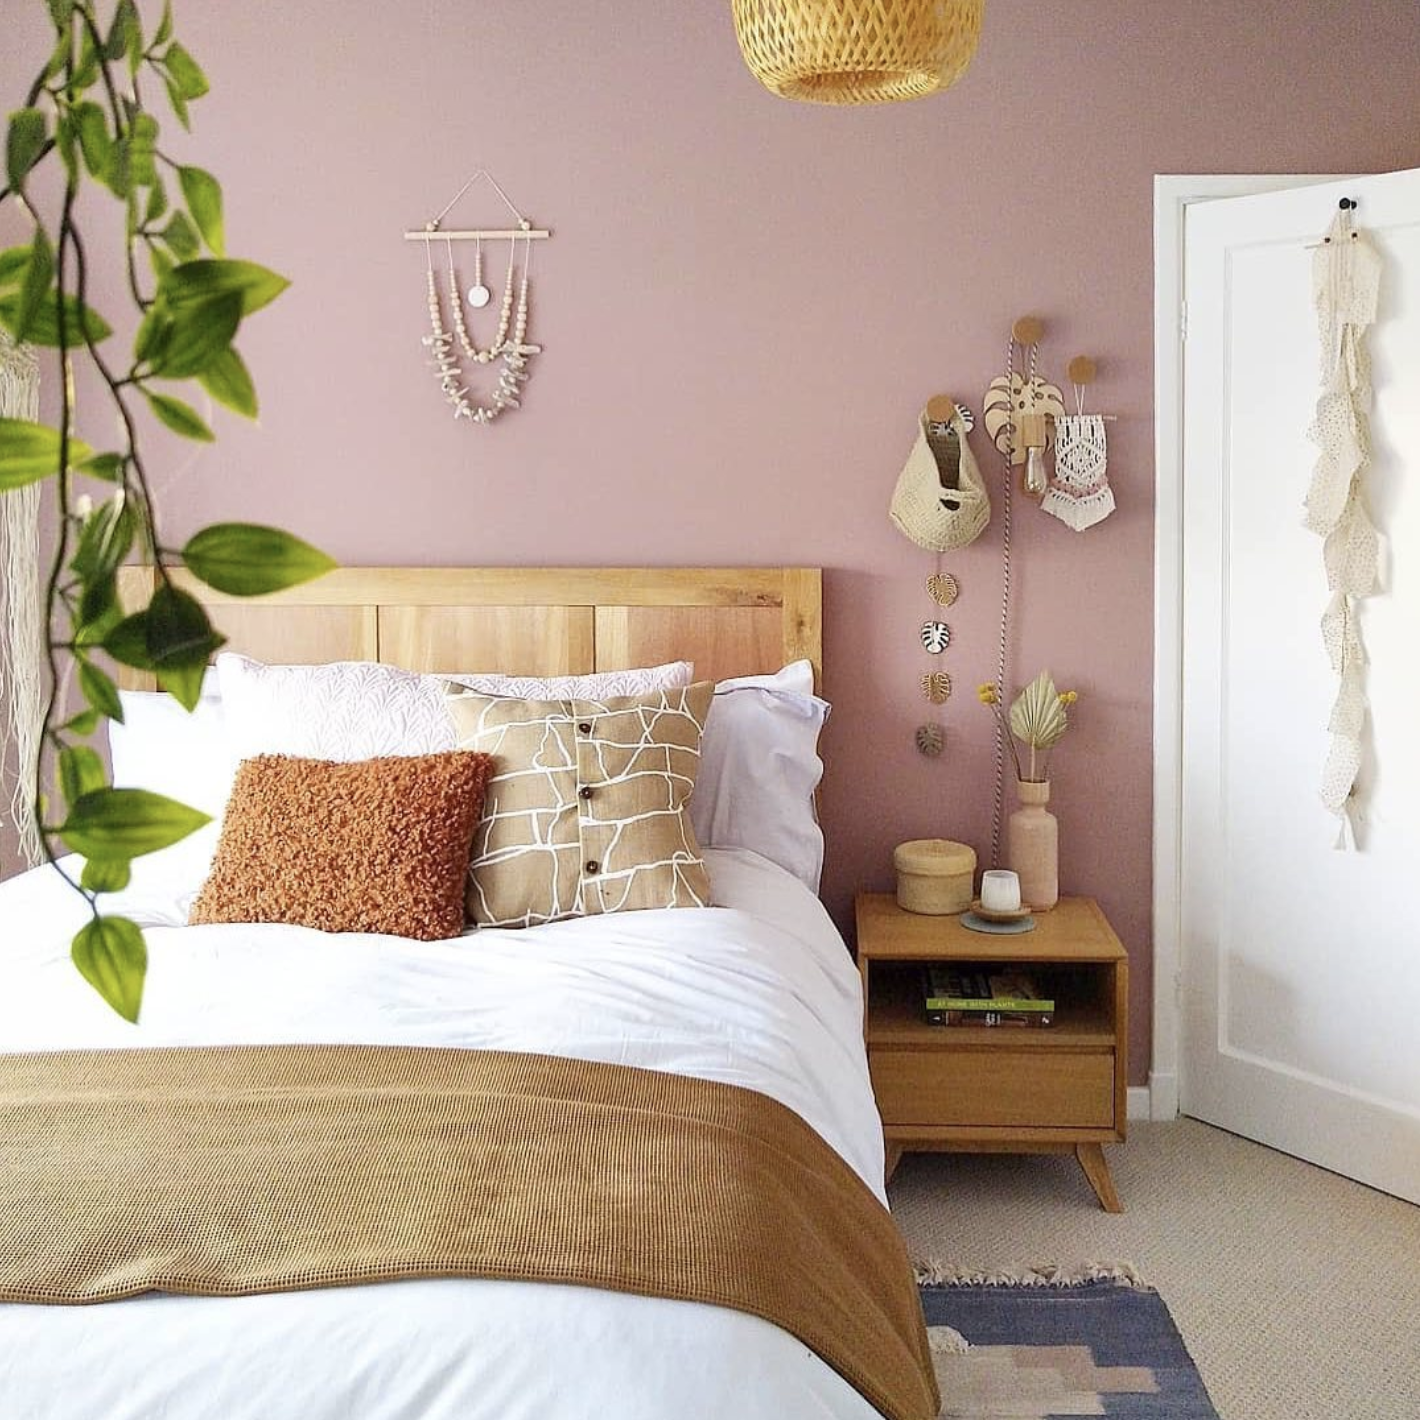 Dusty Pink Bedroom and Decor Inspiration - IMAGE via @little_york_house on Instagram, feat. paint color 'Sulking Room Pink' from Farrow and Ball.